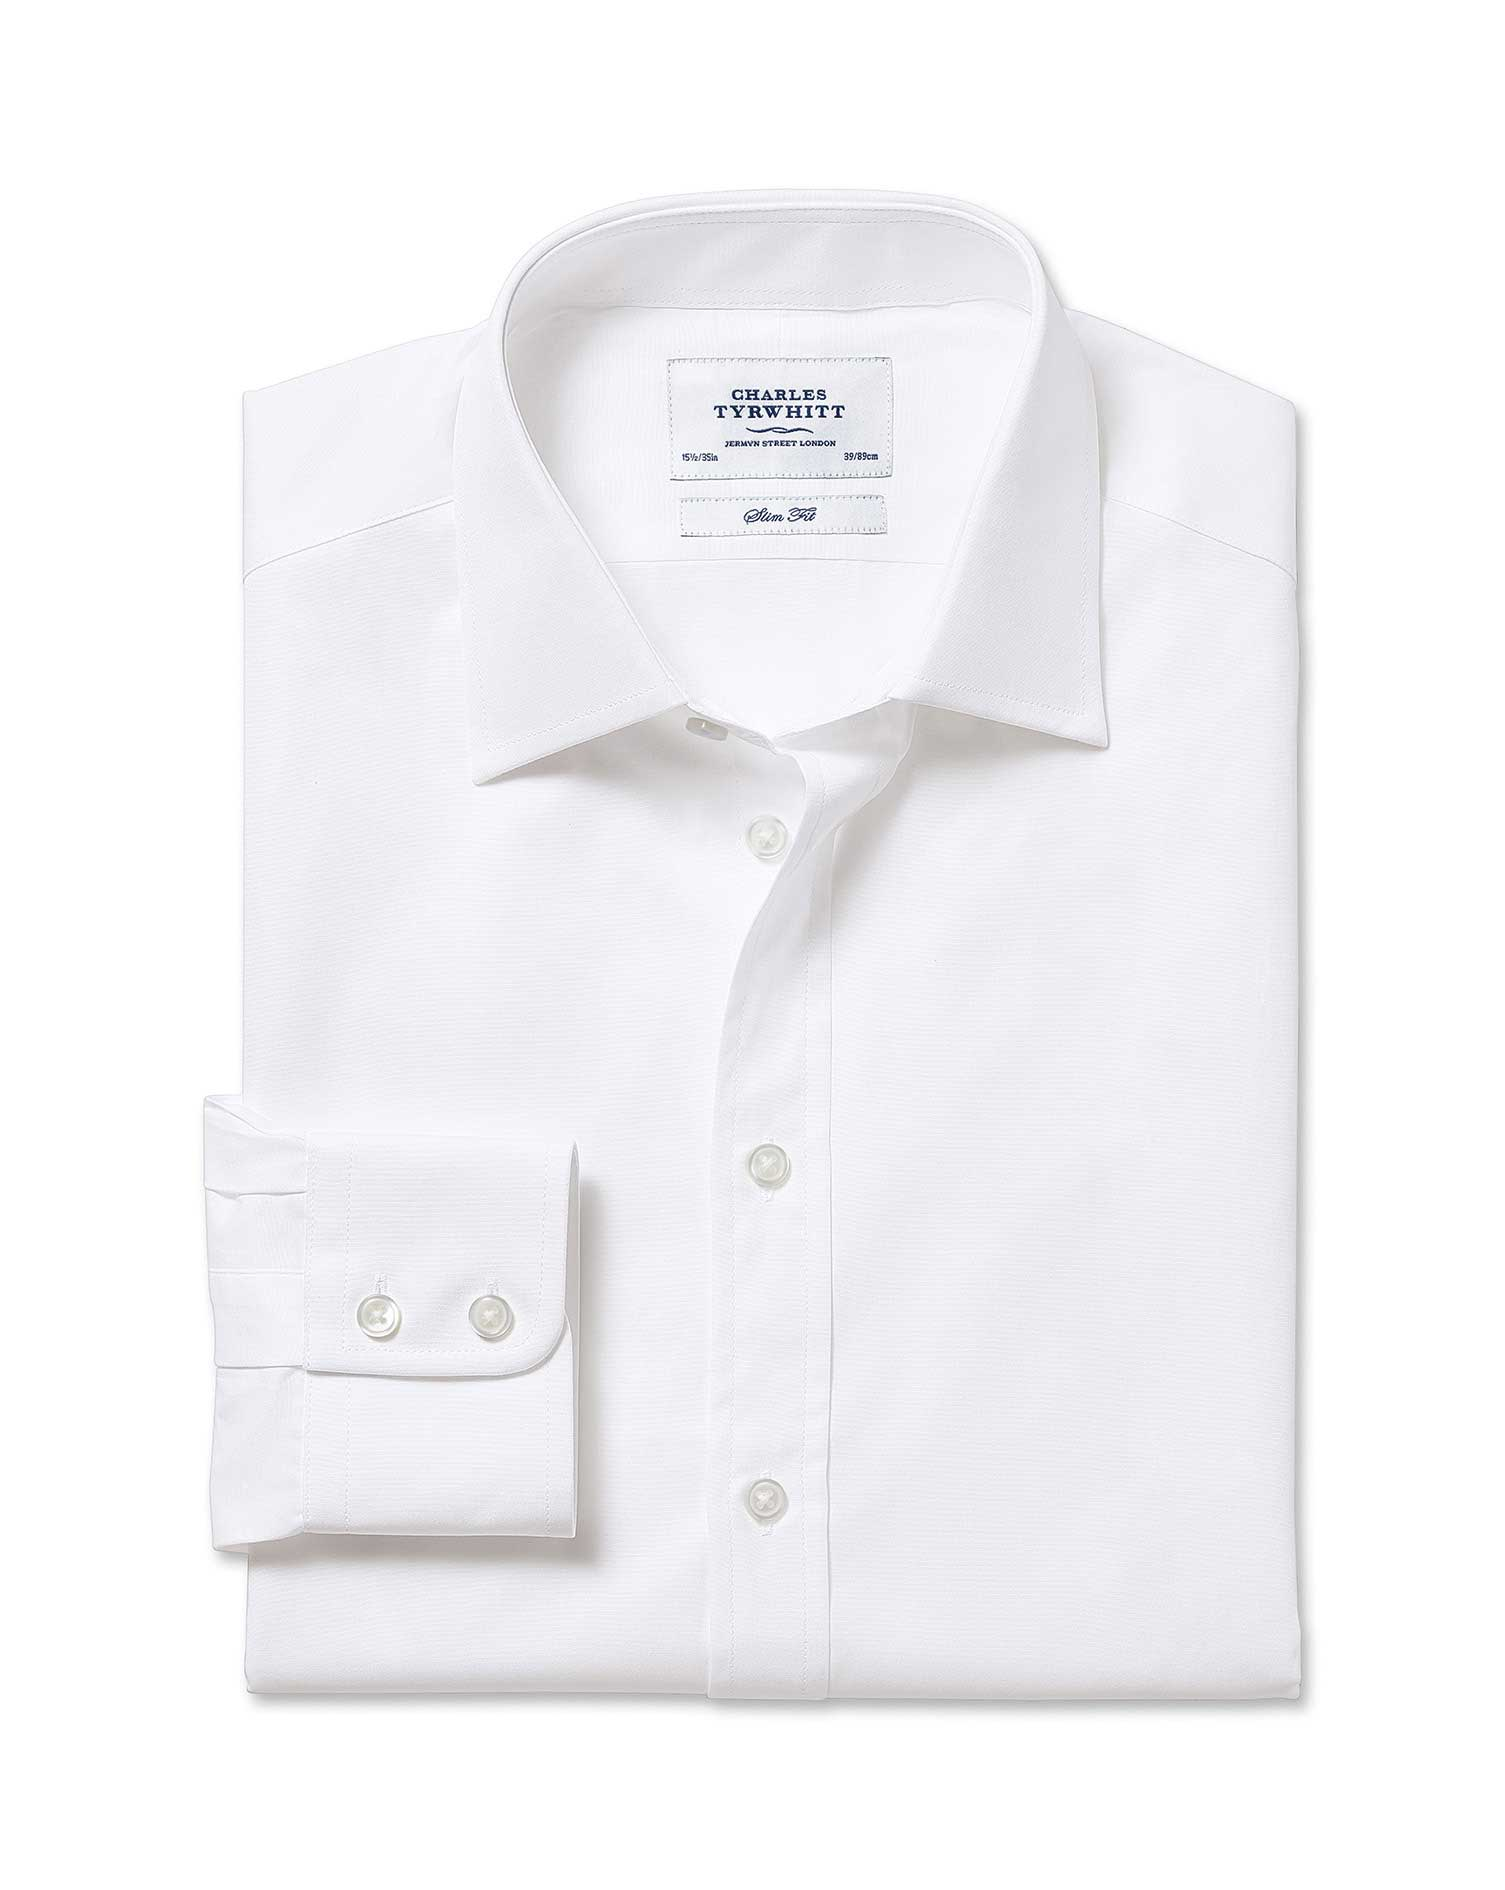 Classic Fit Egyptian Cotton Poplin White Formal Shirt Single Cuff Size 16/34 by Charles Tyrwhitt